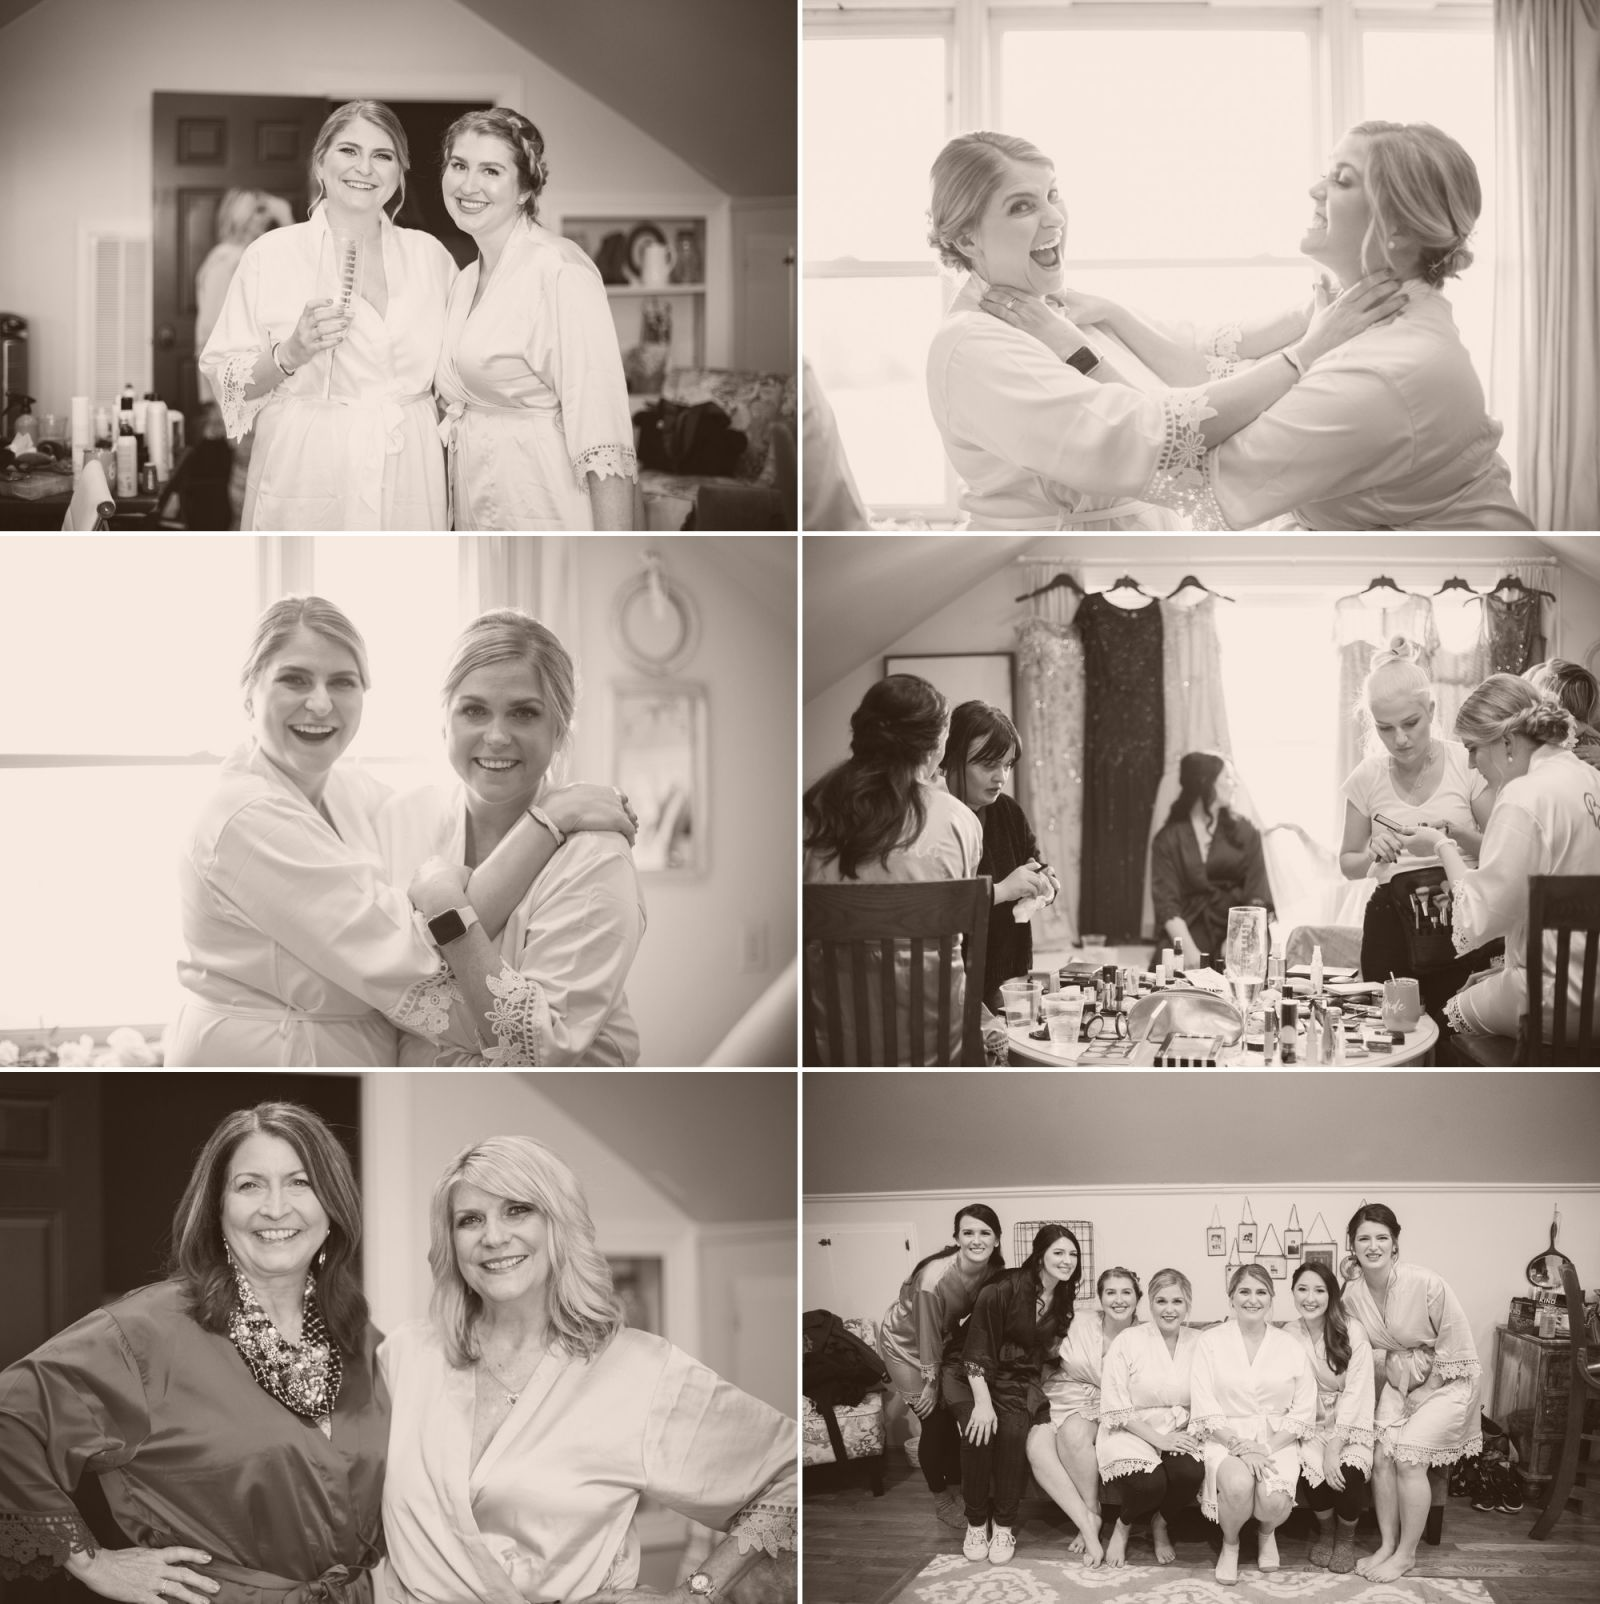 mcconnell house wedding in franklin, tnbride and